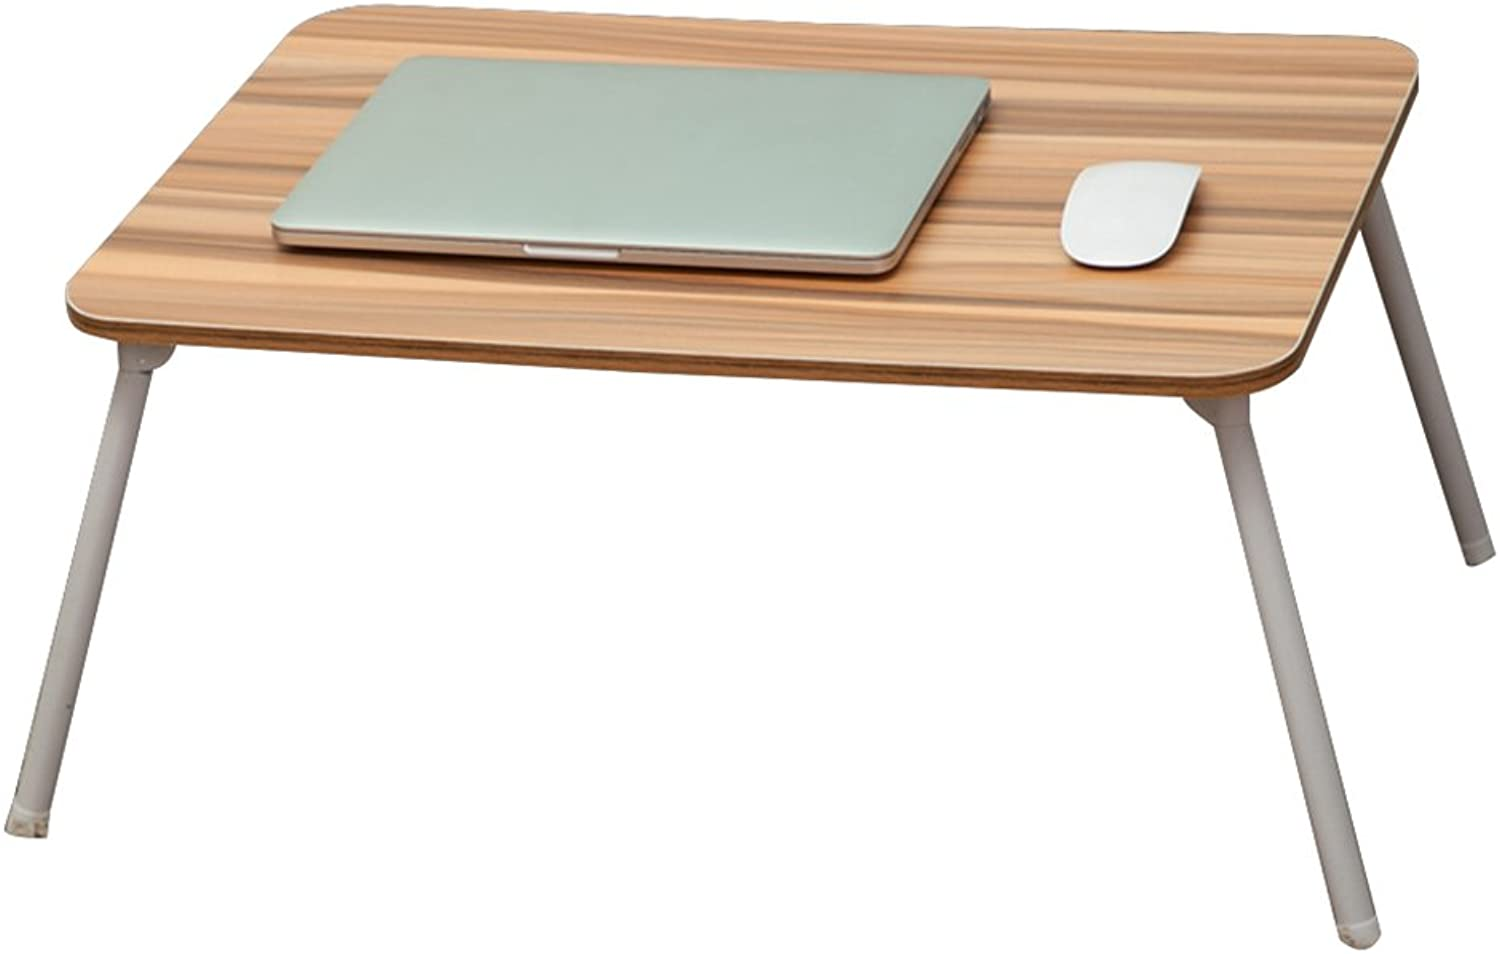 HAIPENG Small Foldable Tables Computer Notebook Lazy Desk Bedside Table Wooden Dormitory Home (color   1 , Size   60x40x29cm)